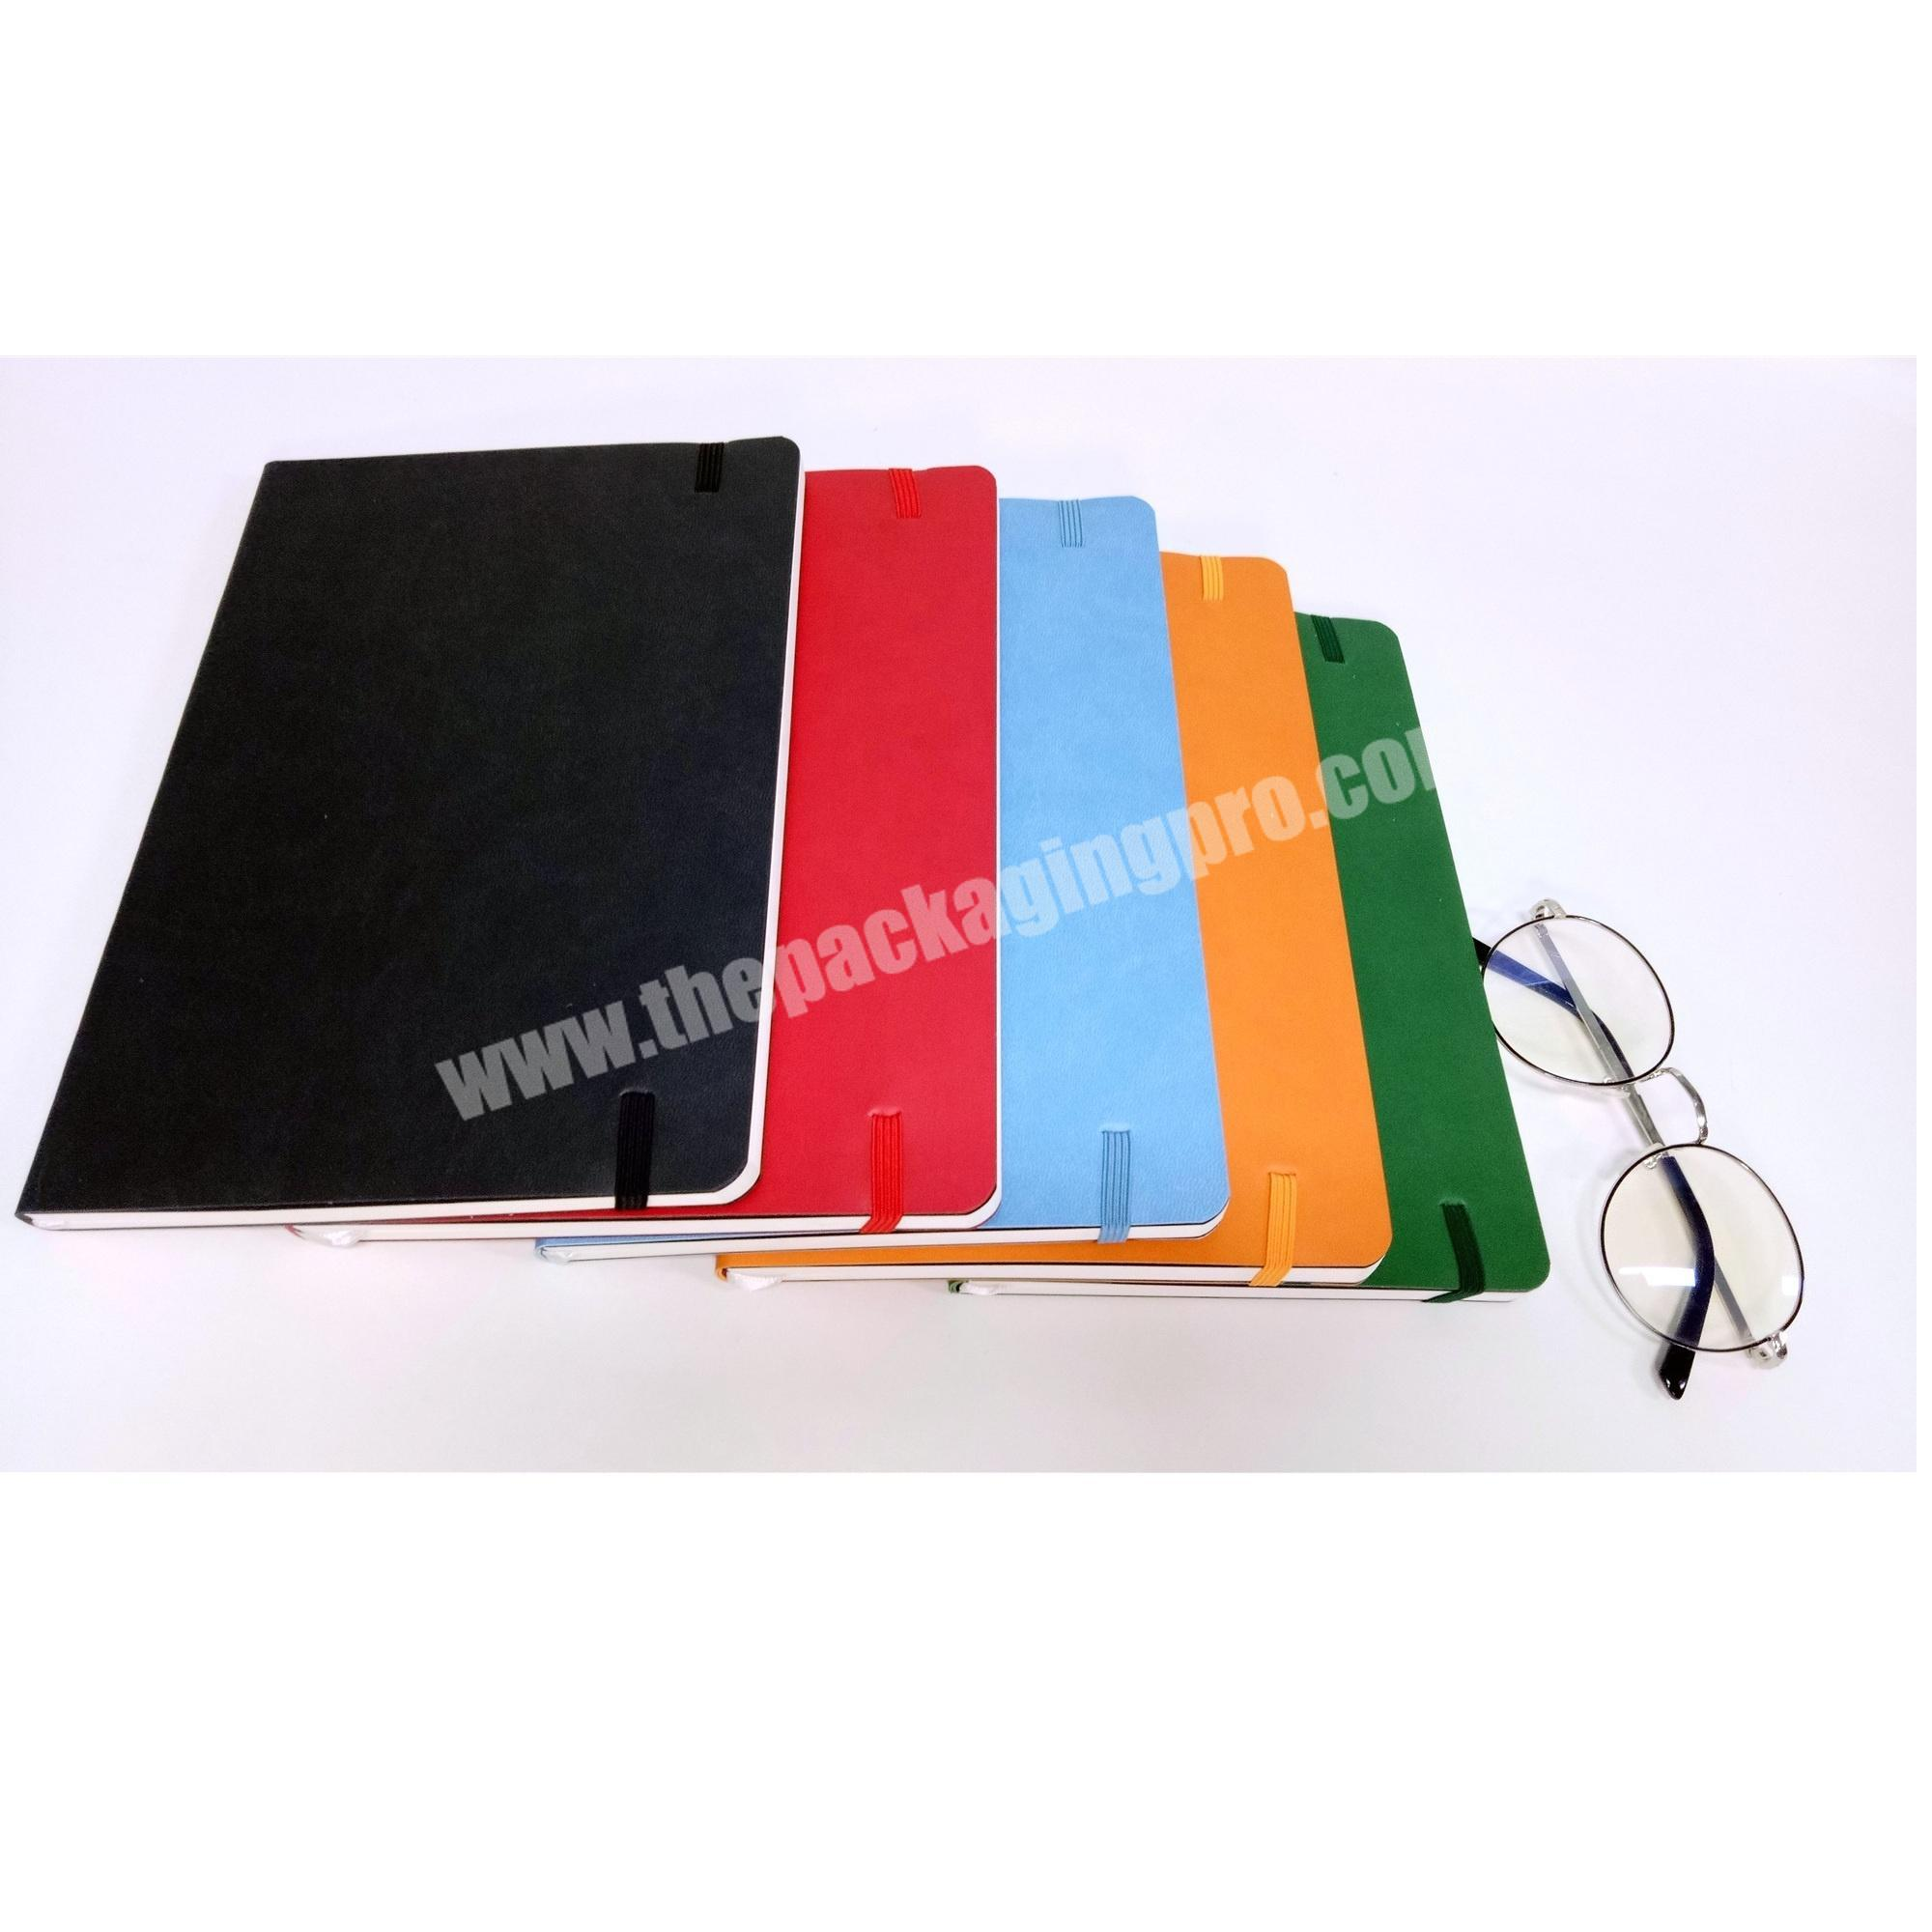 Shop Wholesale exercise notebook for school productivity planner personalized diary